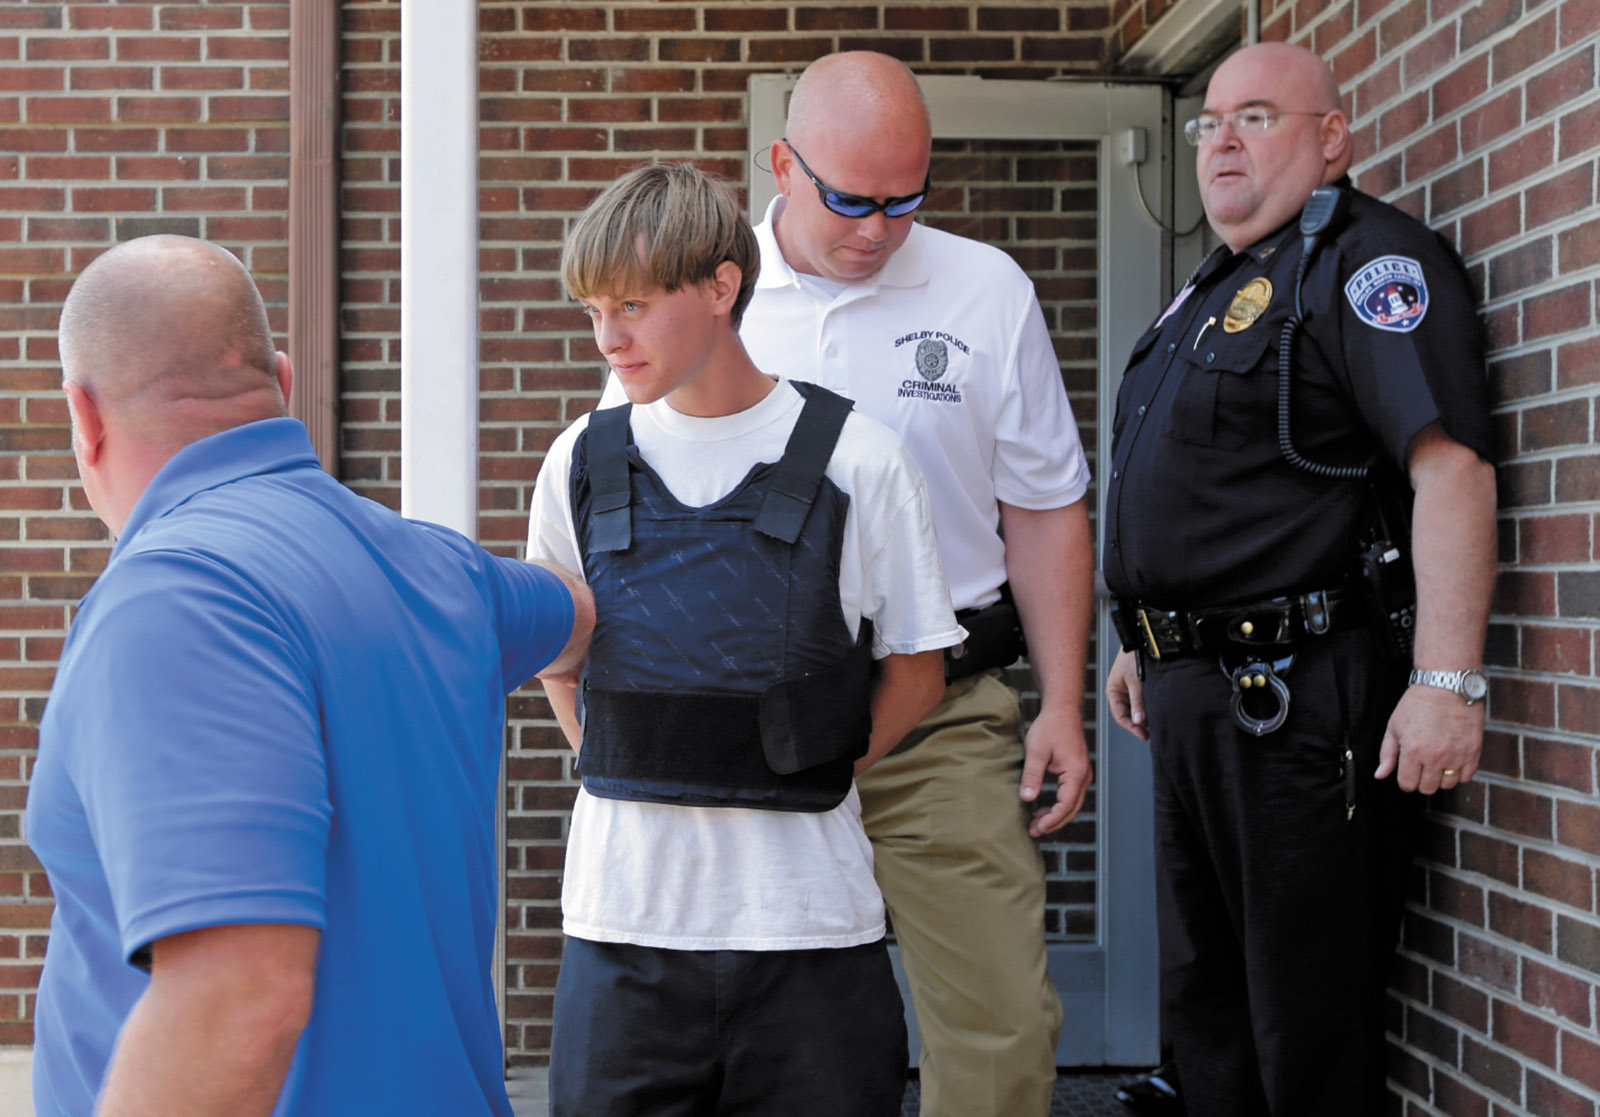 United States V Dylann Roof By Edward Ball The New